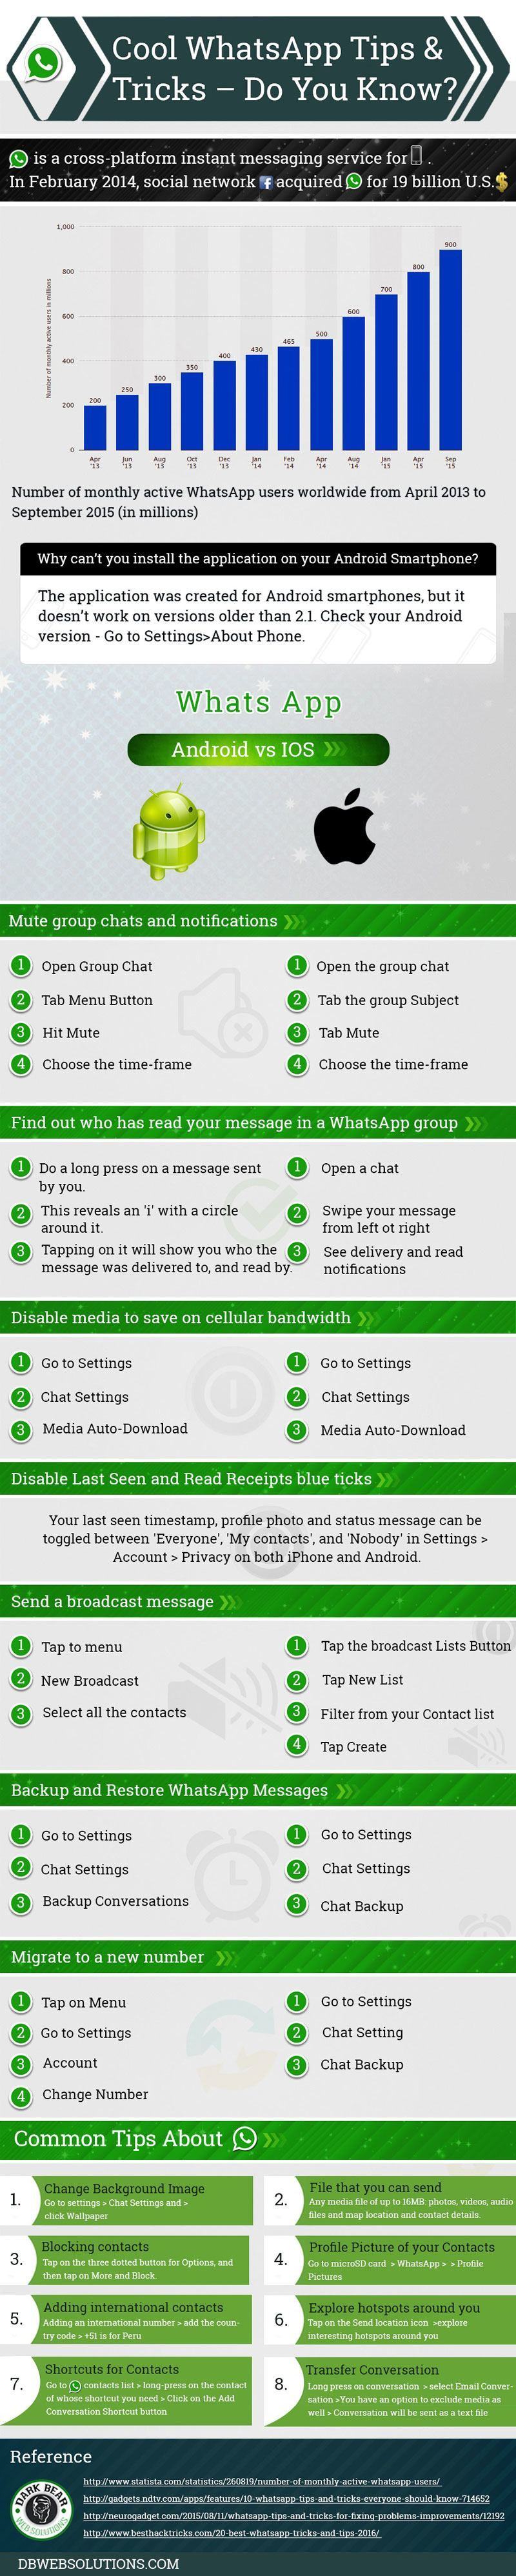 WhatsApp top tips hacks